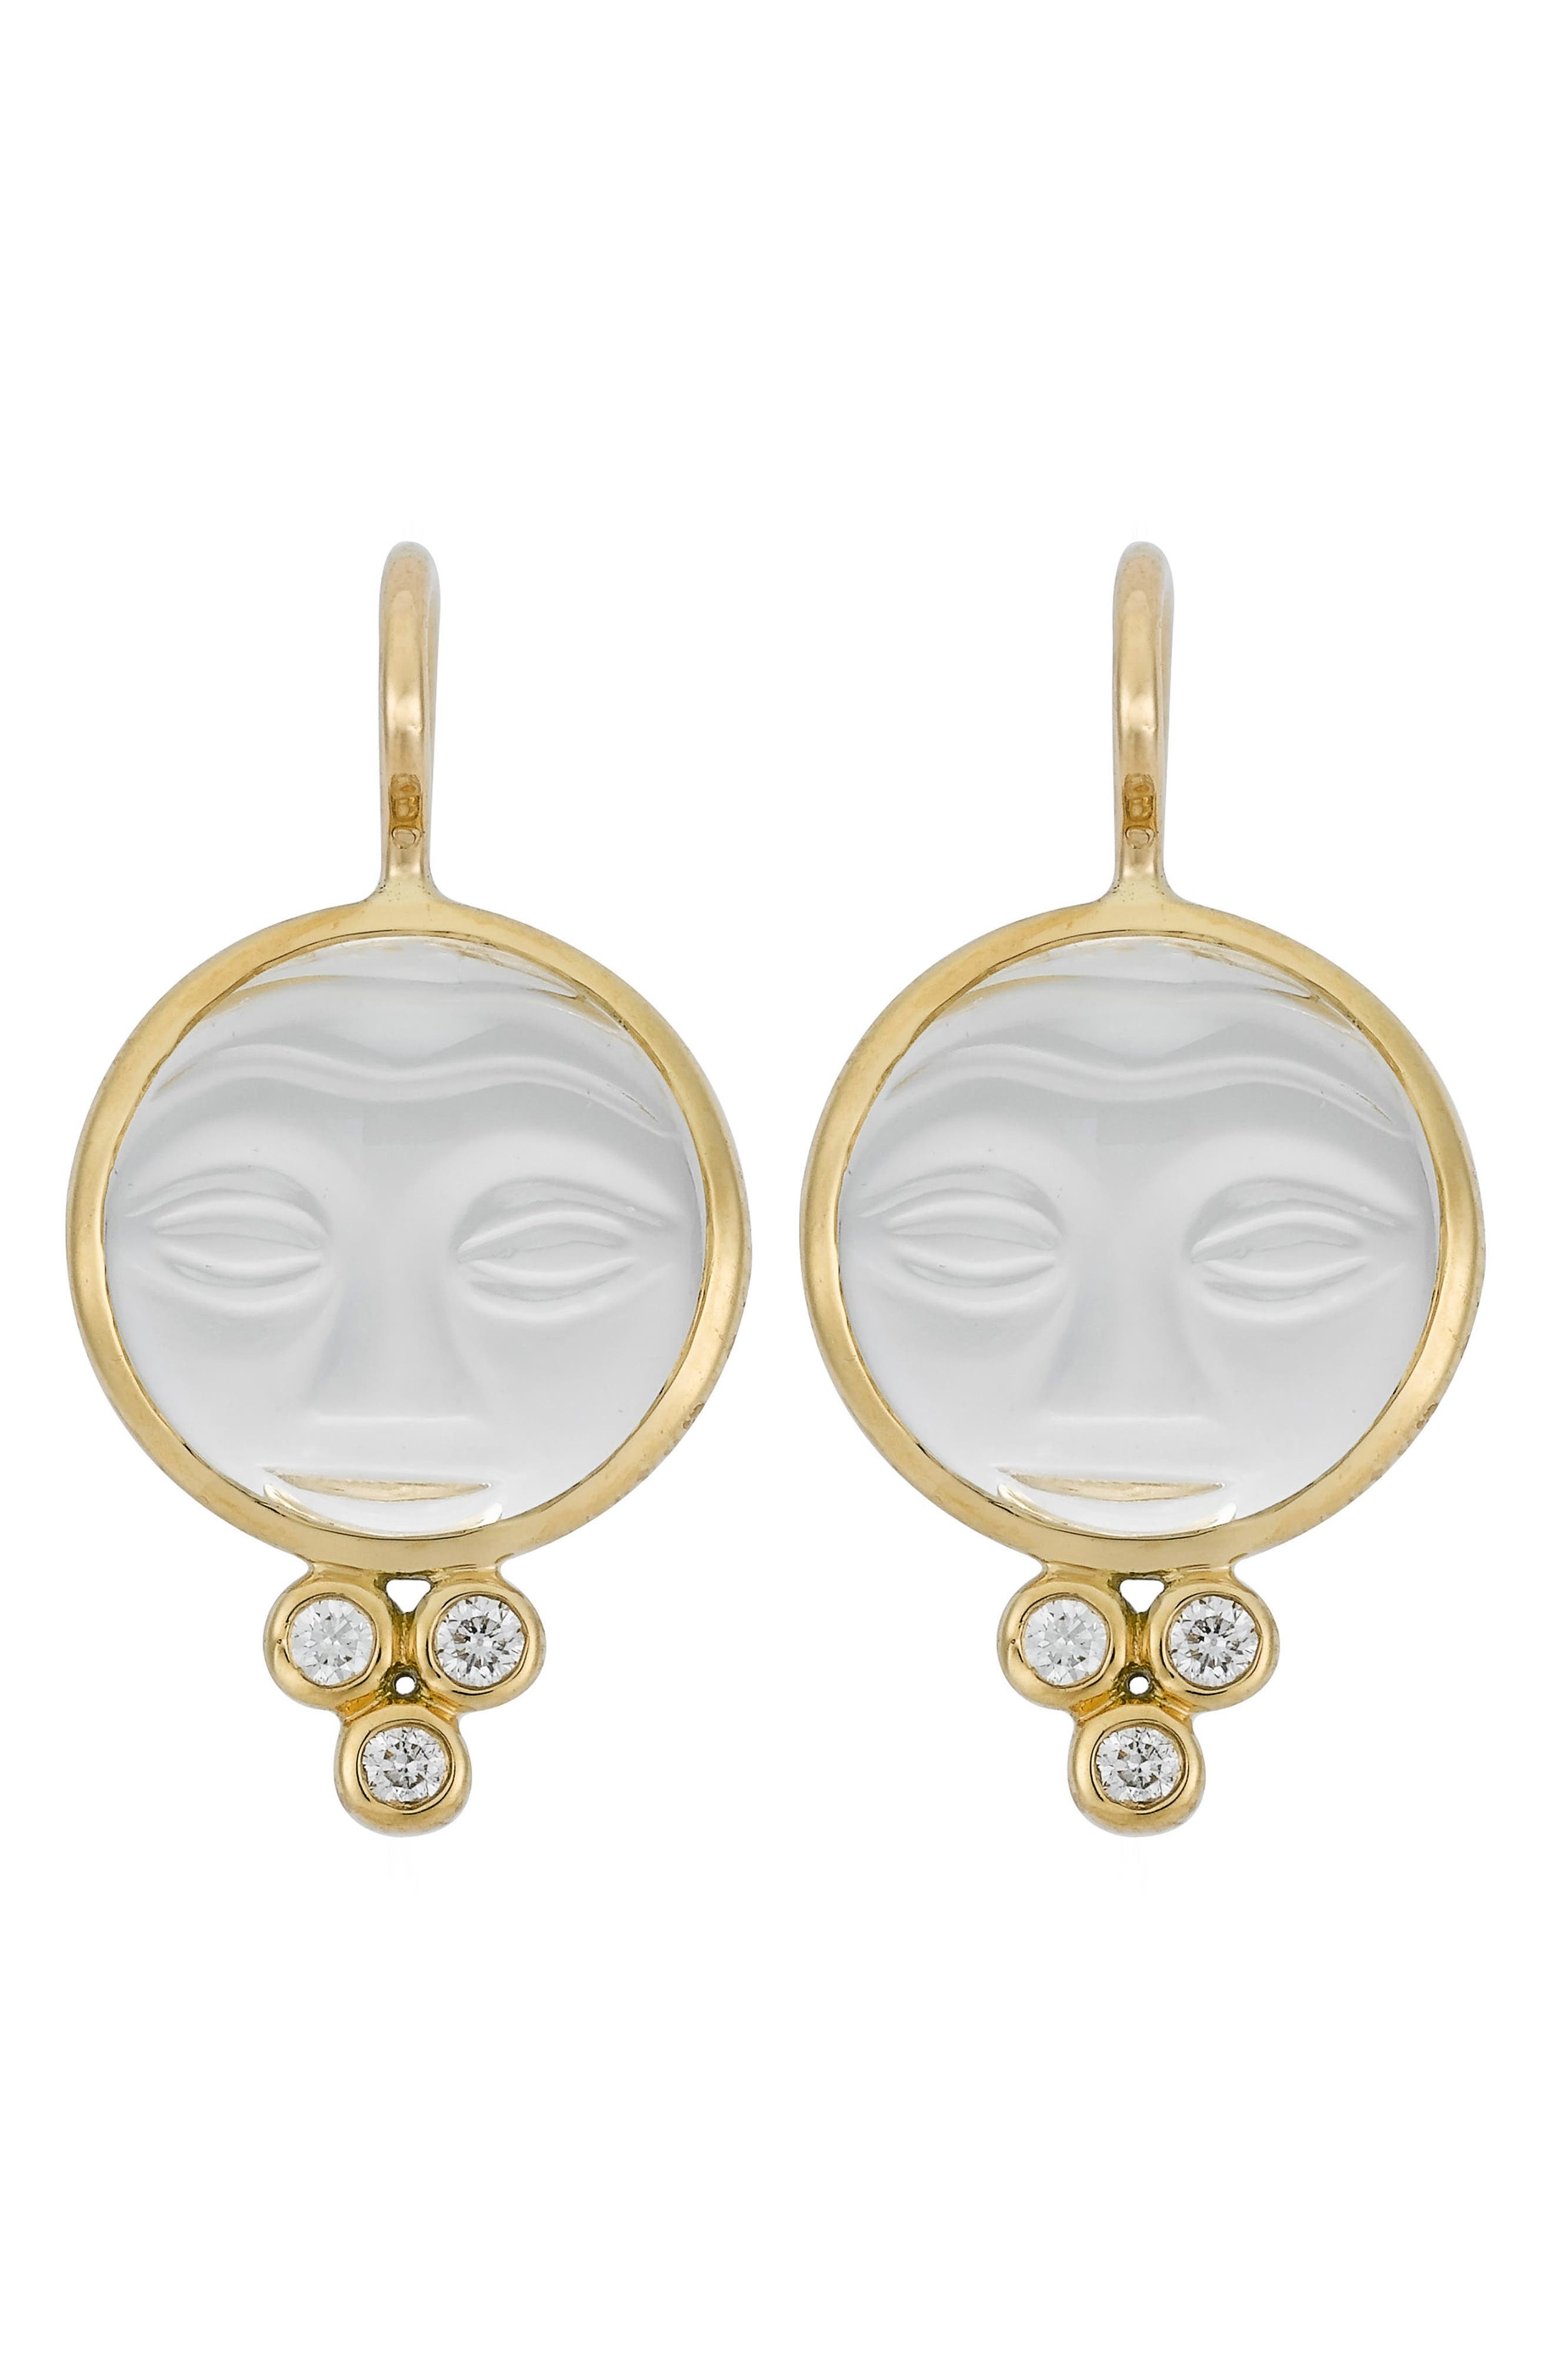 Main Image - Temple St. Clair Moonface Diamond & Rock Crystal Earrings